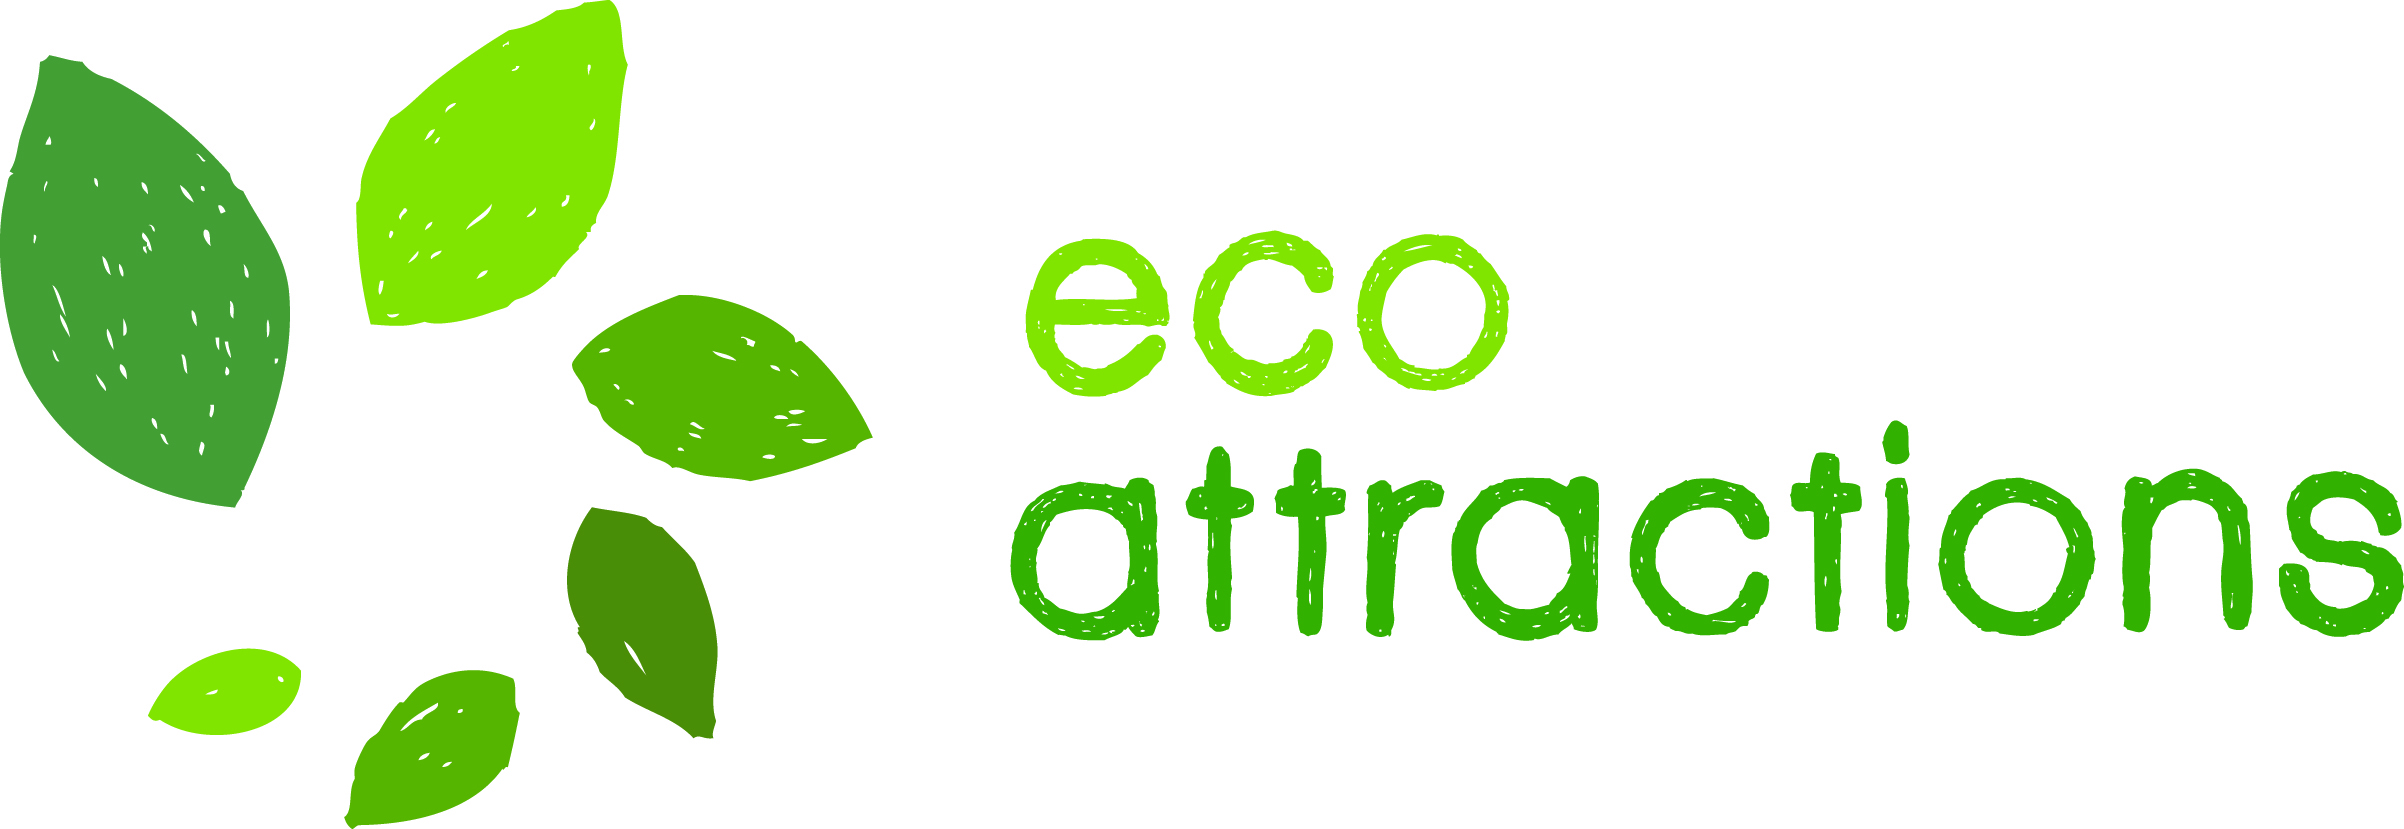 Eco Attractions Group